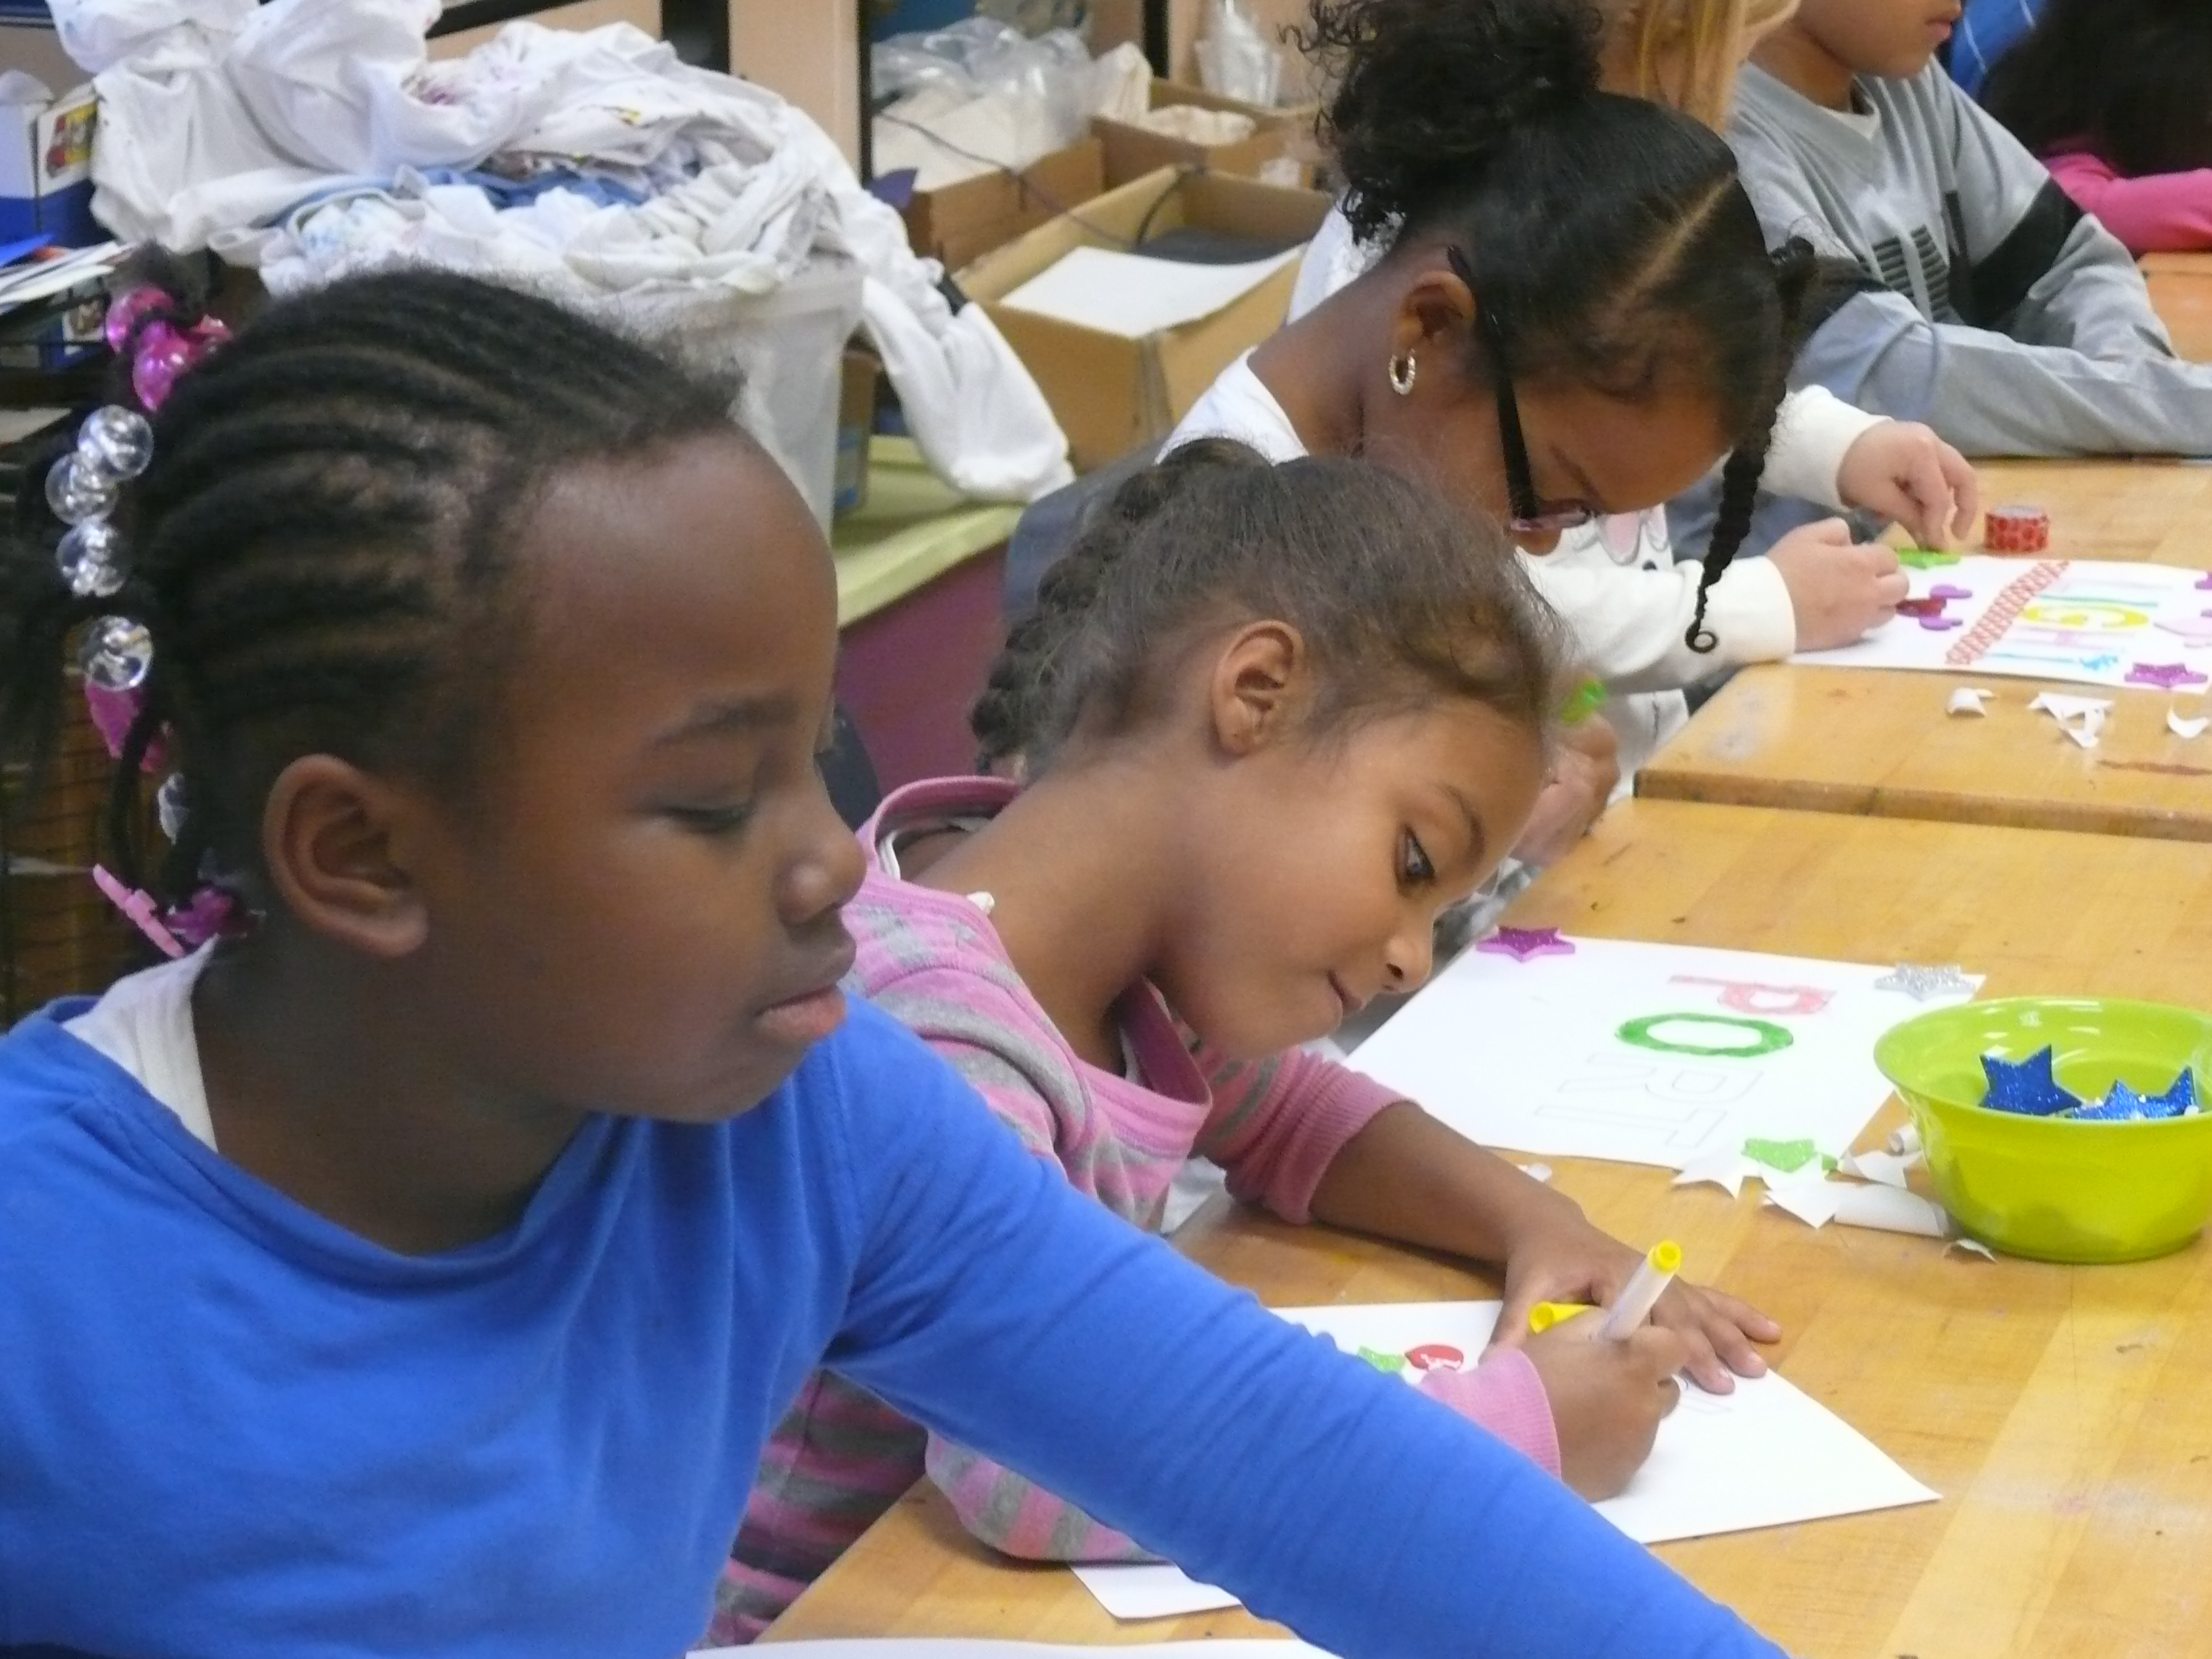 Students in the Green Street Teaching and Learning Center's after school program take classes in the arts, culture and science.